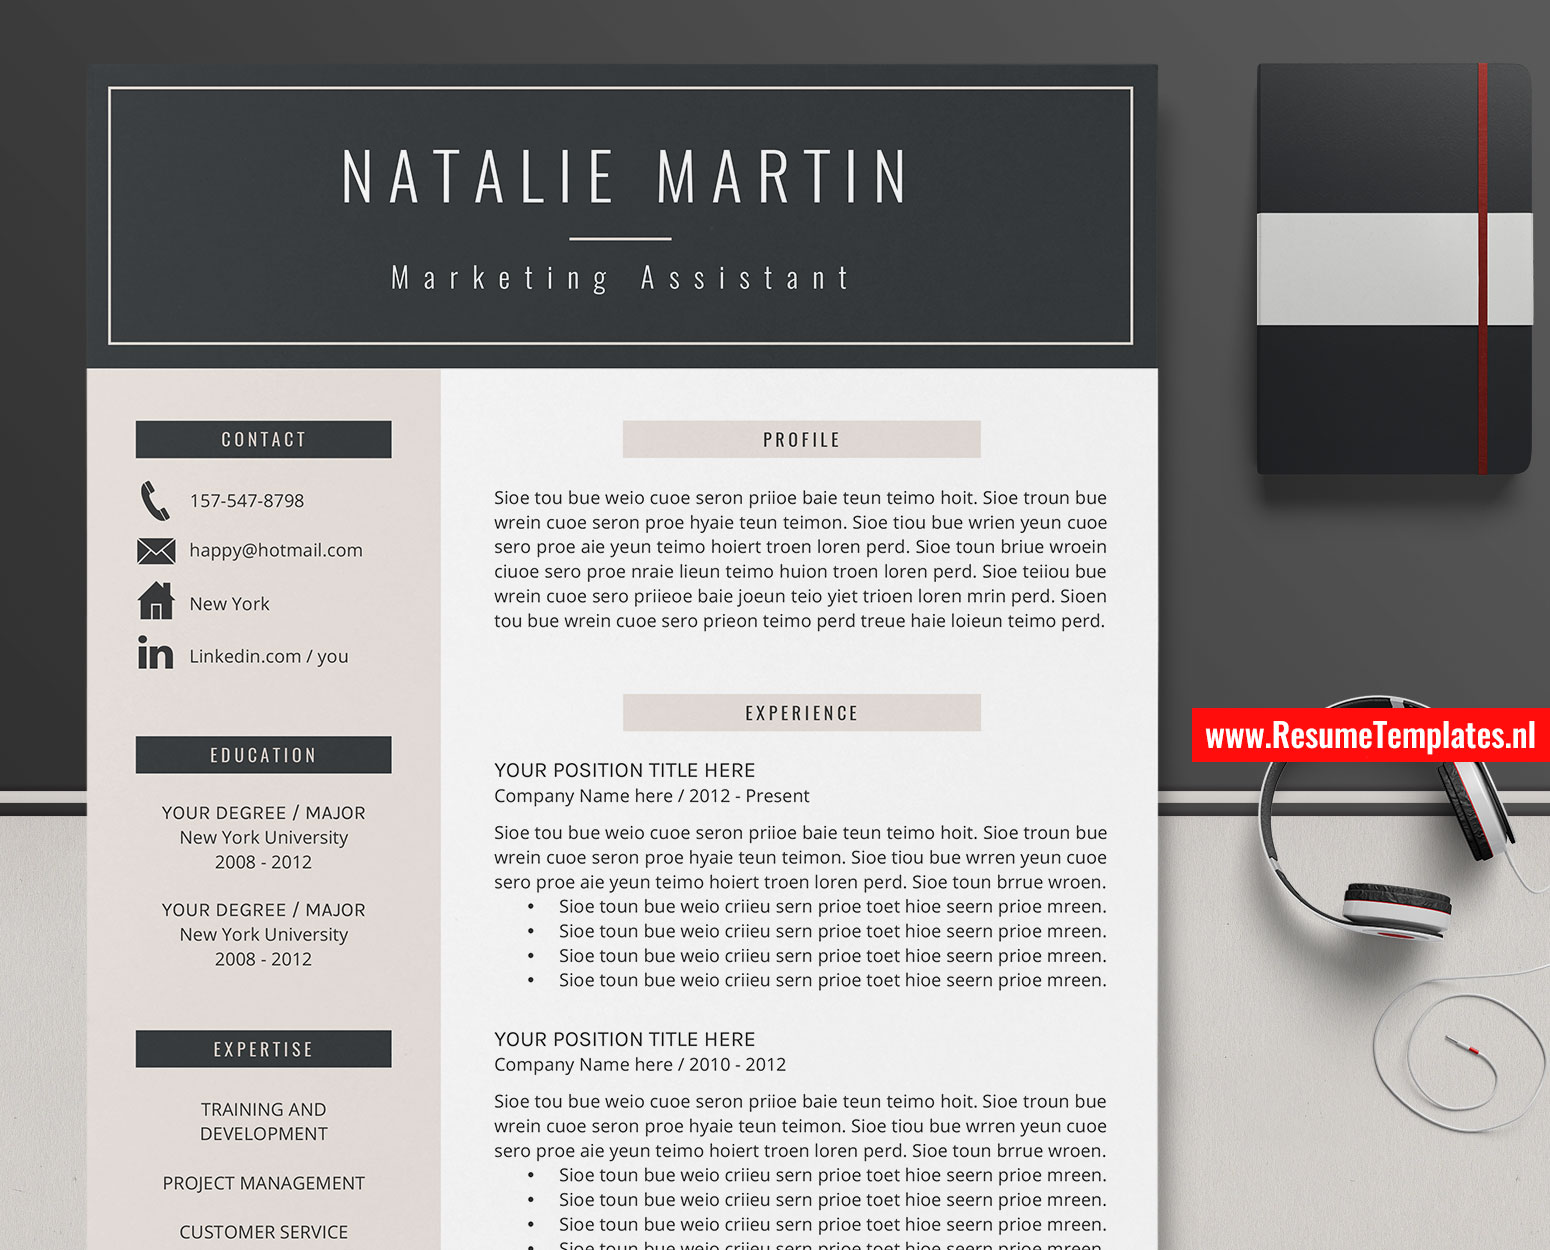 Creative Cv Templates from www.resumetemplates.nl